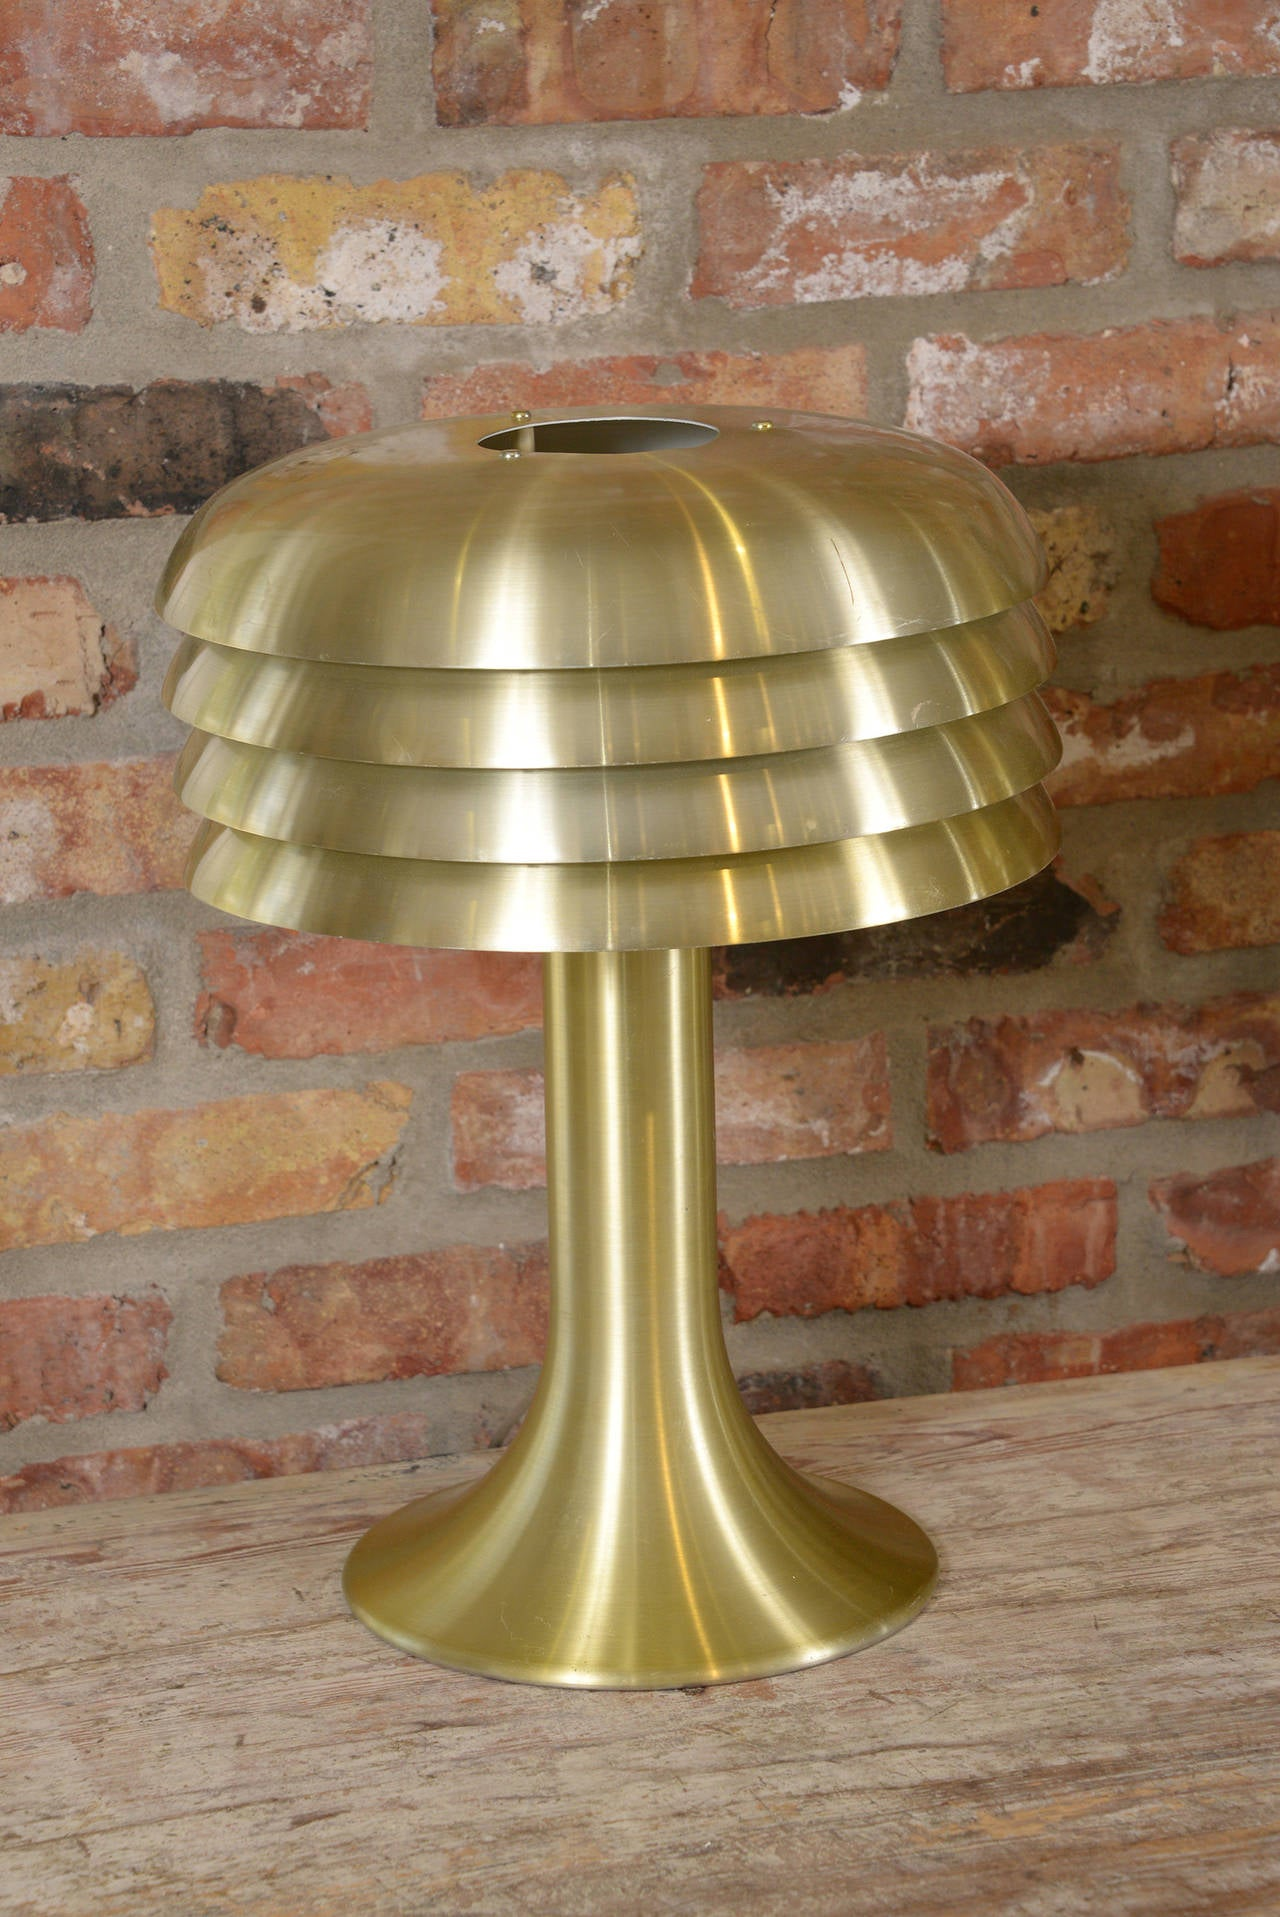 Pair of Hans Agne Jacobson brass lamps wired for the USA by Hans Agne Jacobson, Markayrd Sweden, 1950s.